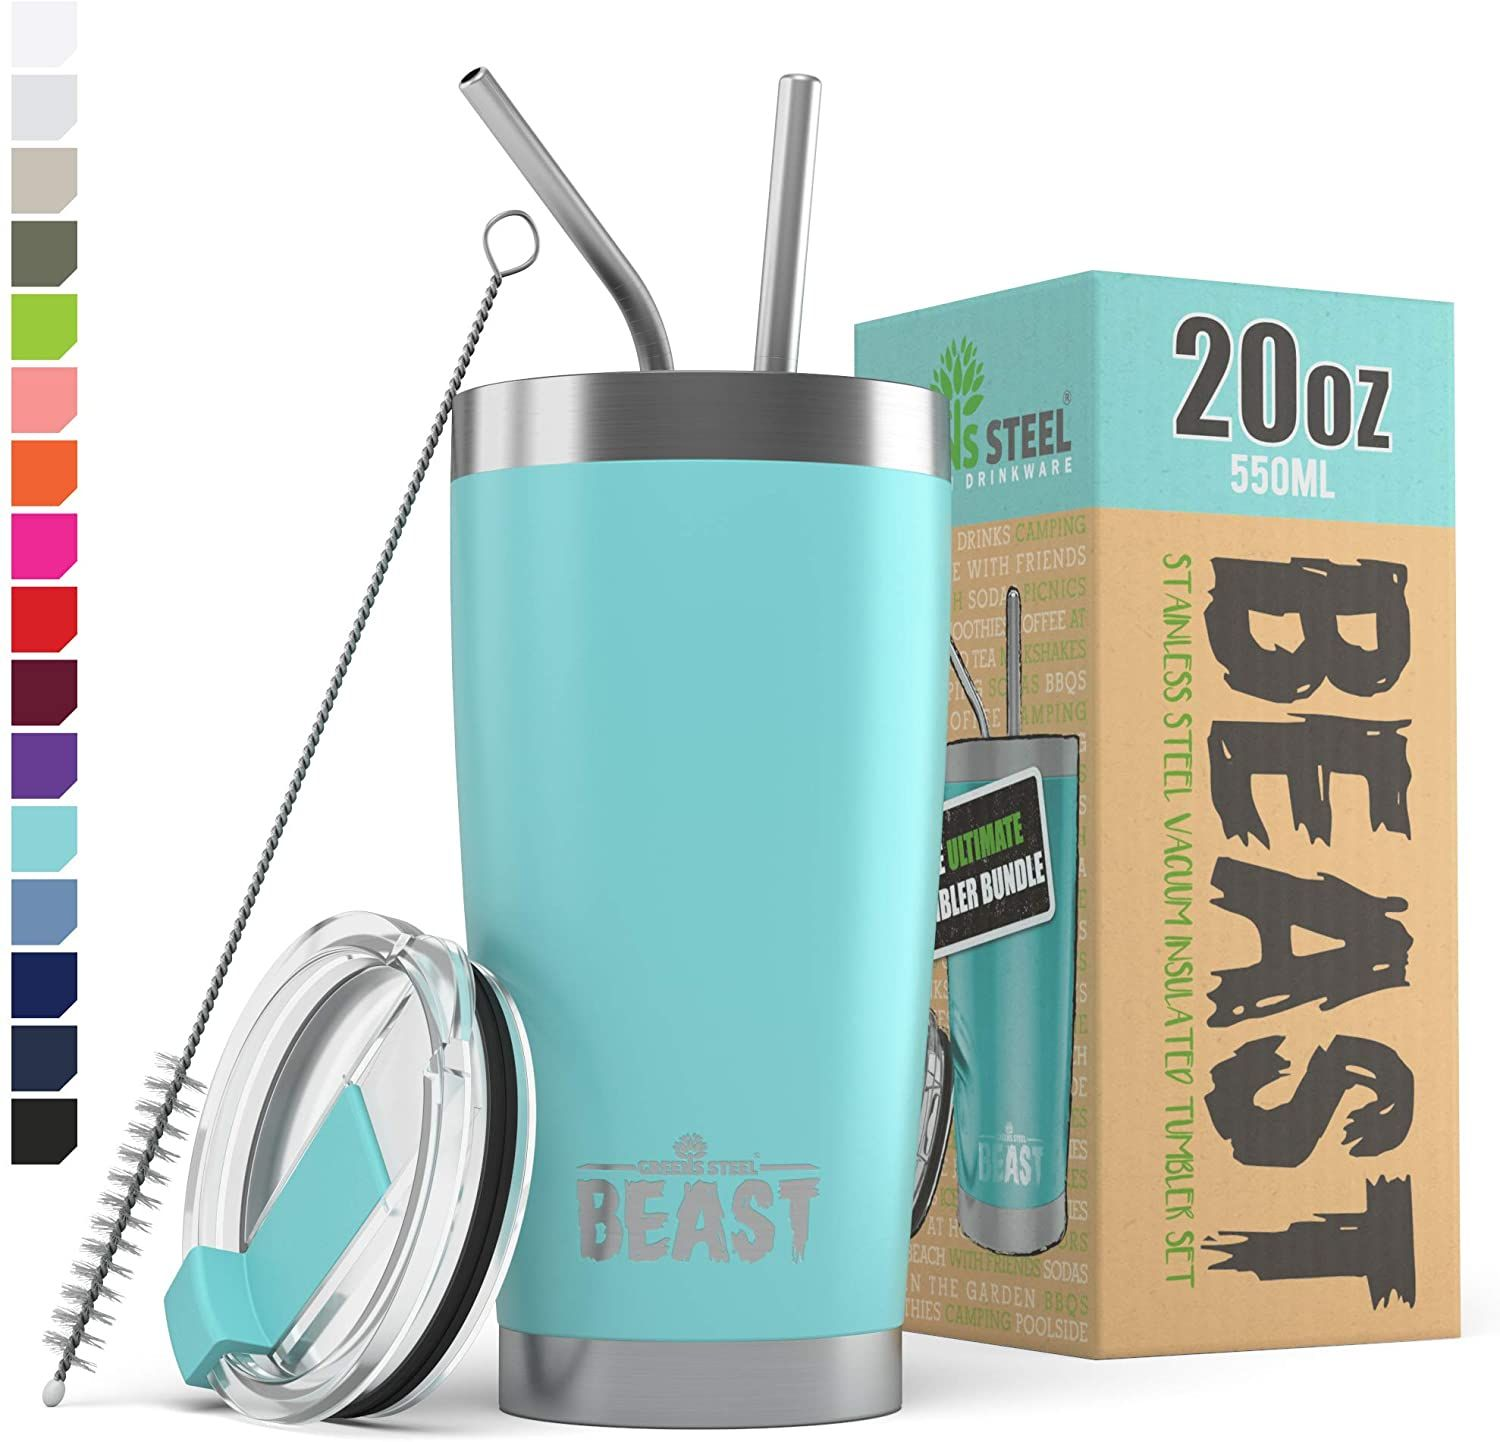 Offering unrivaled value for money: 2 unbreakable steel straws, a free straw brush to make cleaning even easier & 1 splash proof lid presented in a beautiful Gift Box. With so many second-rate tumblers available on the market we wanted to set ourselves apart and be the best #NewHomes #ModelHomes #decorideas #mandalabookcase #decorhomeideas